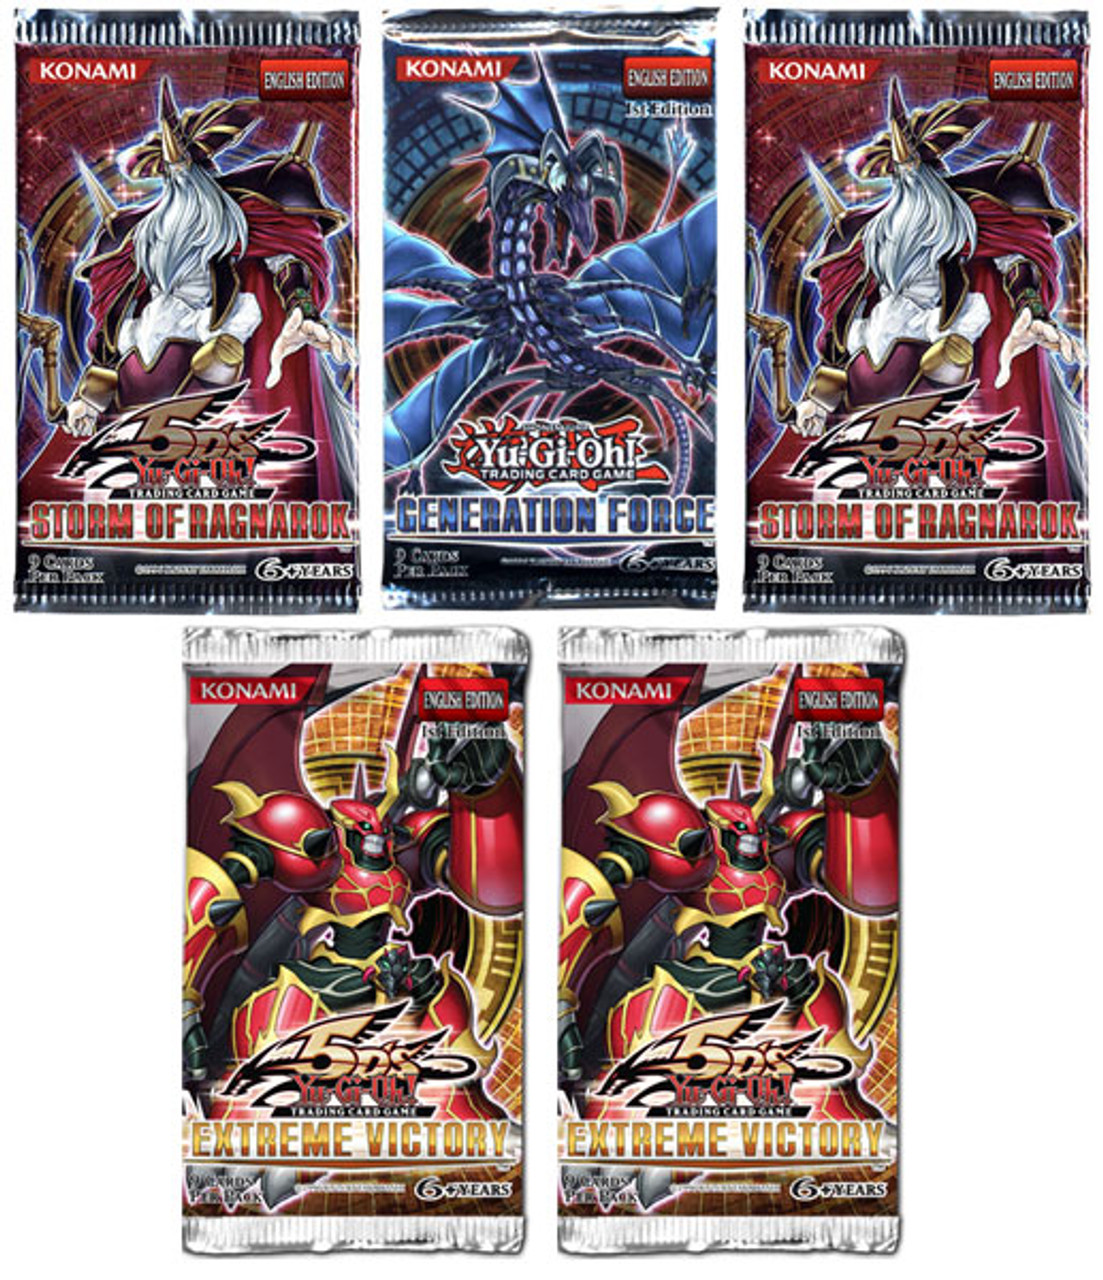 YuGiOh Custom 2 Storm of Ragnarok, 2 Extreme Victory & 1 Generation Force Booster Packs